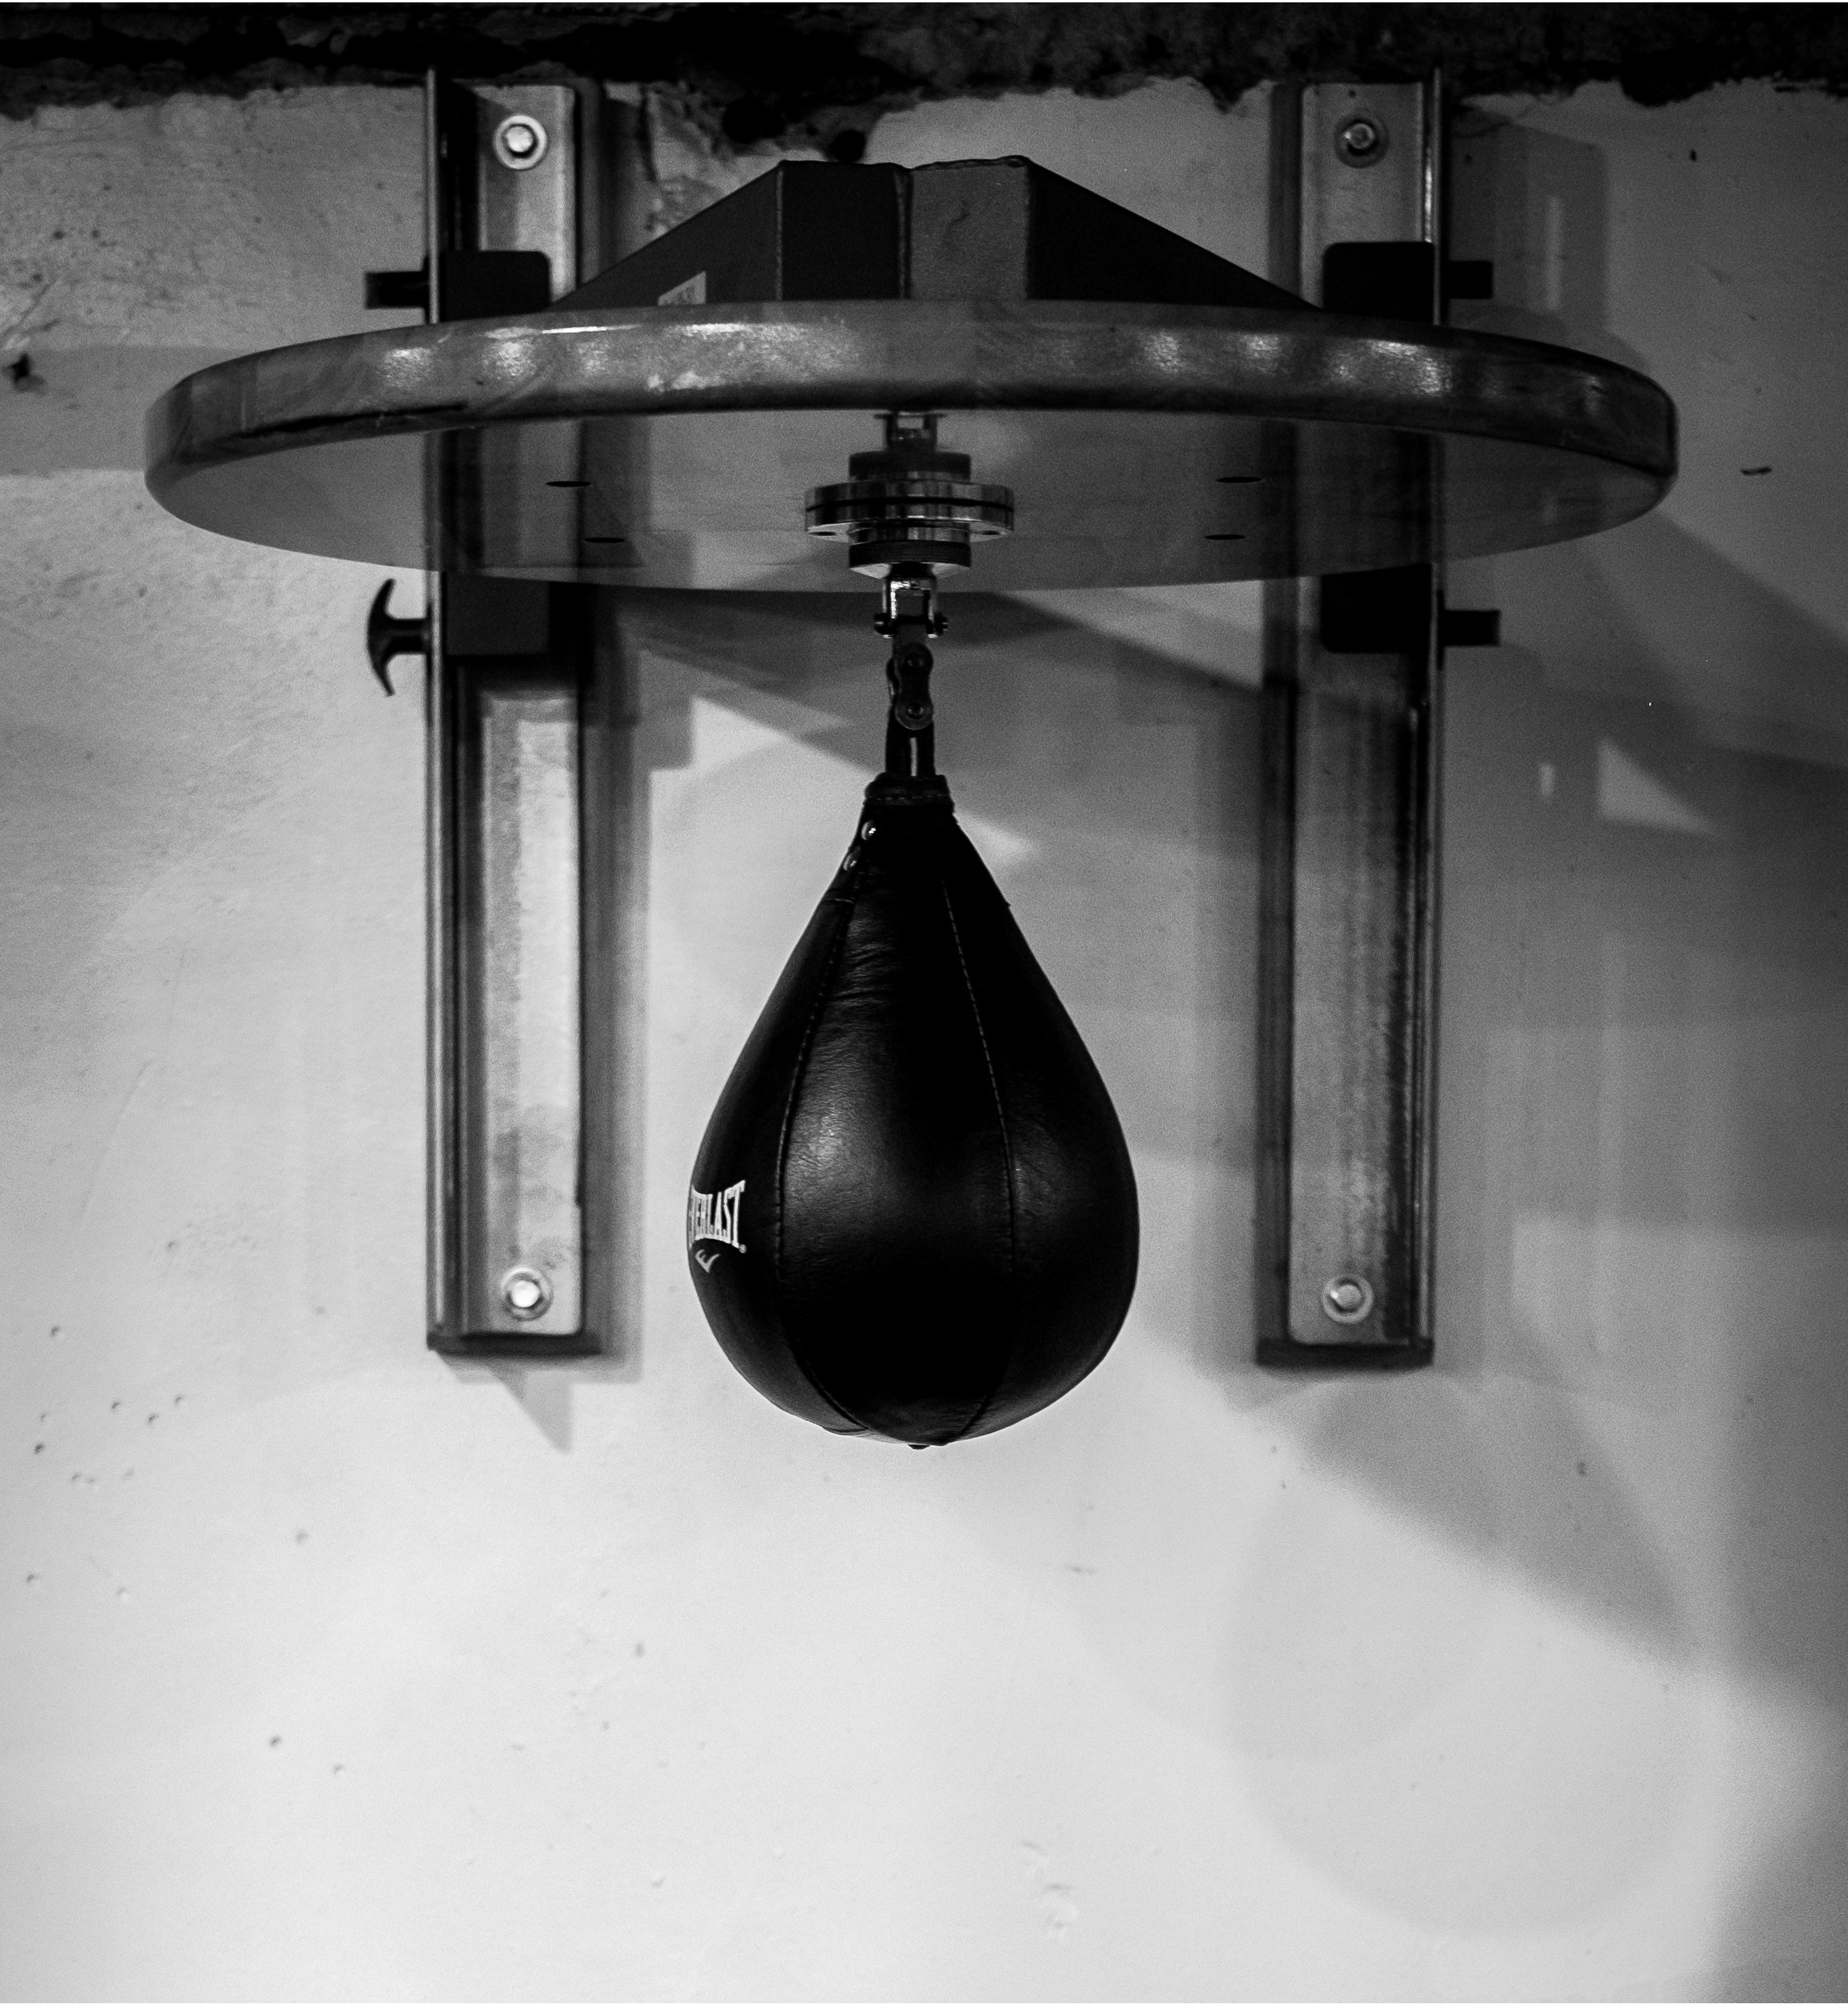 Boxing Memberships - Memberships are available for our downstairs boxing gym! Members have access to all the boxing equipment during our open hours.Monthly CostBoxing Membership: $50Unlimited Boxing Classses: $149.99Unlimited Boxing Classes+Membership: $189.99*Memberships require 30 days notice for cancellation.